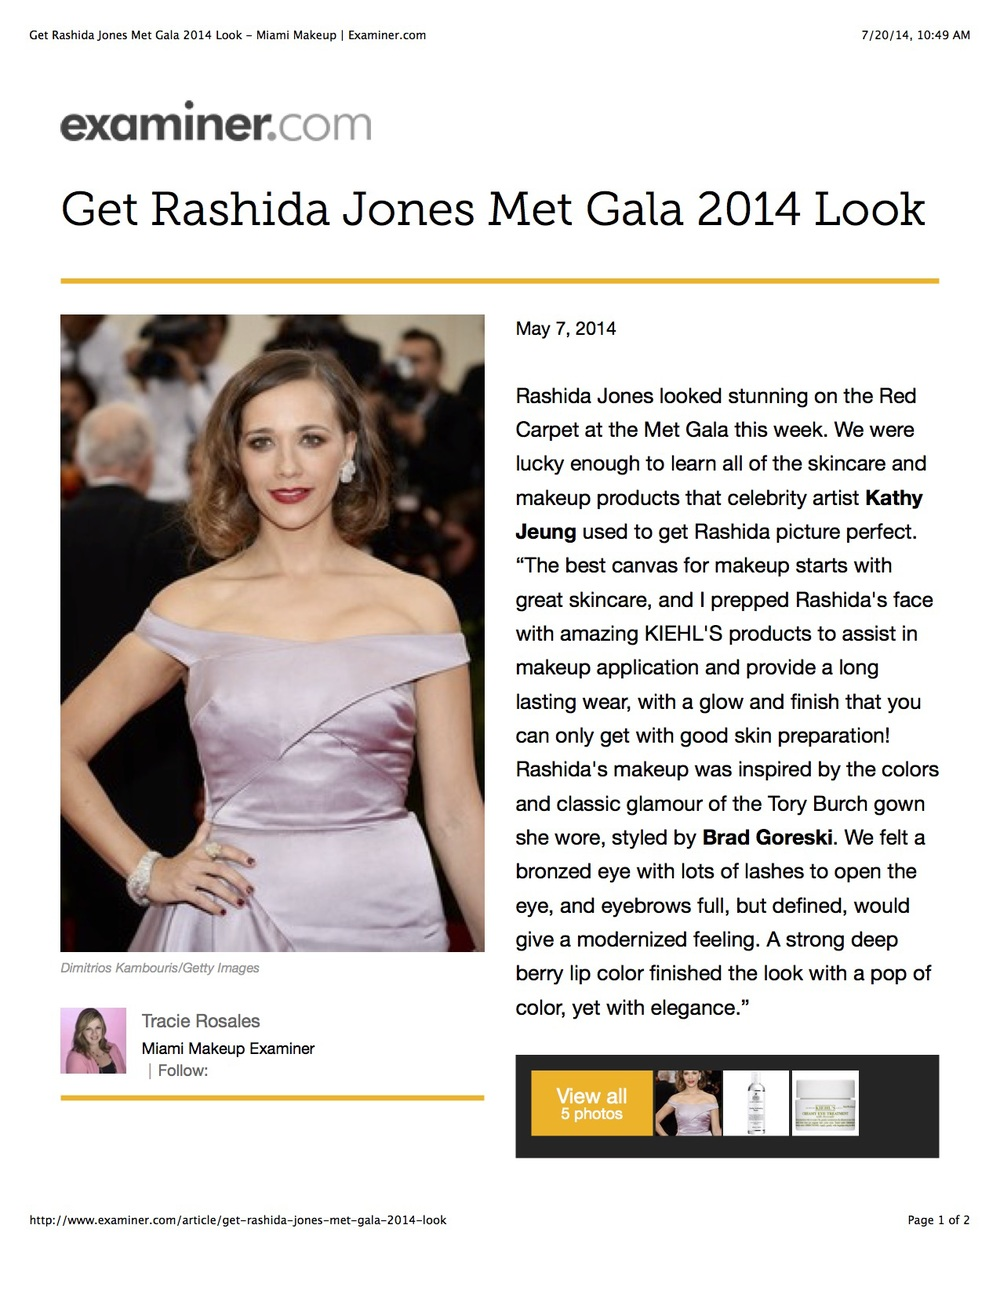 Get Rashida Jones Met Gala 2014 Look - Miami Makeup _ Examiner.com.jpg